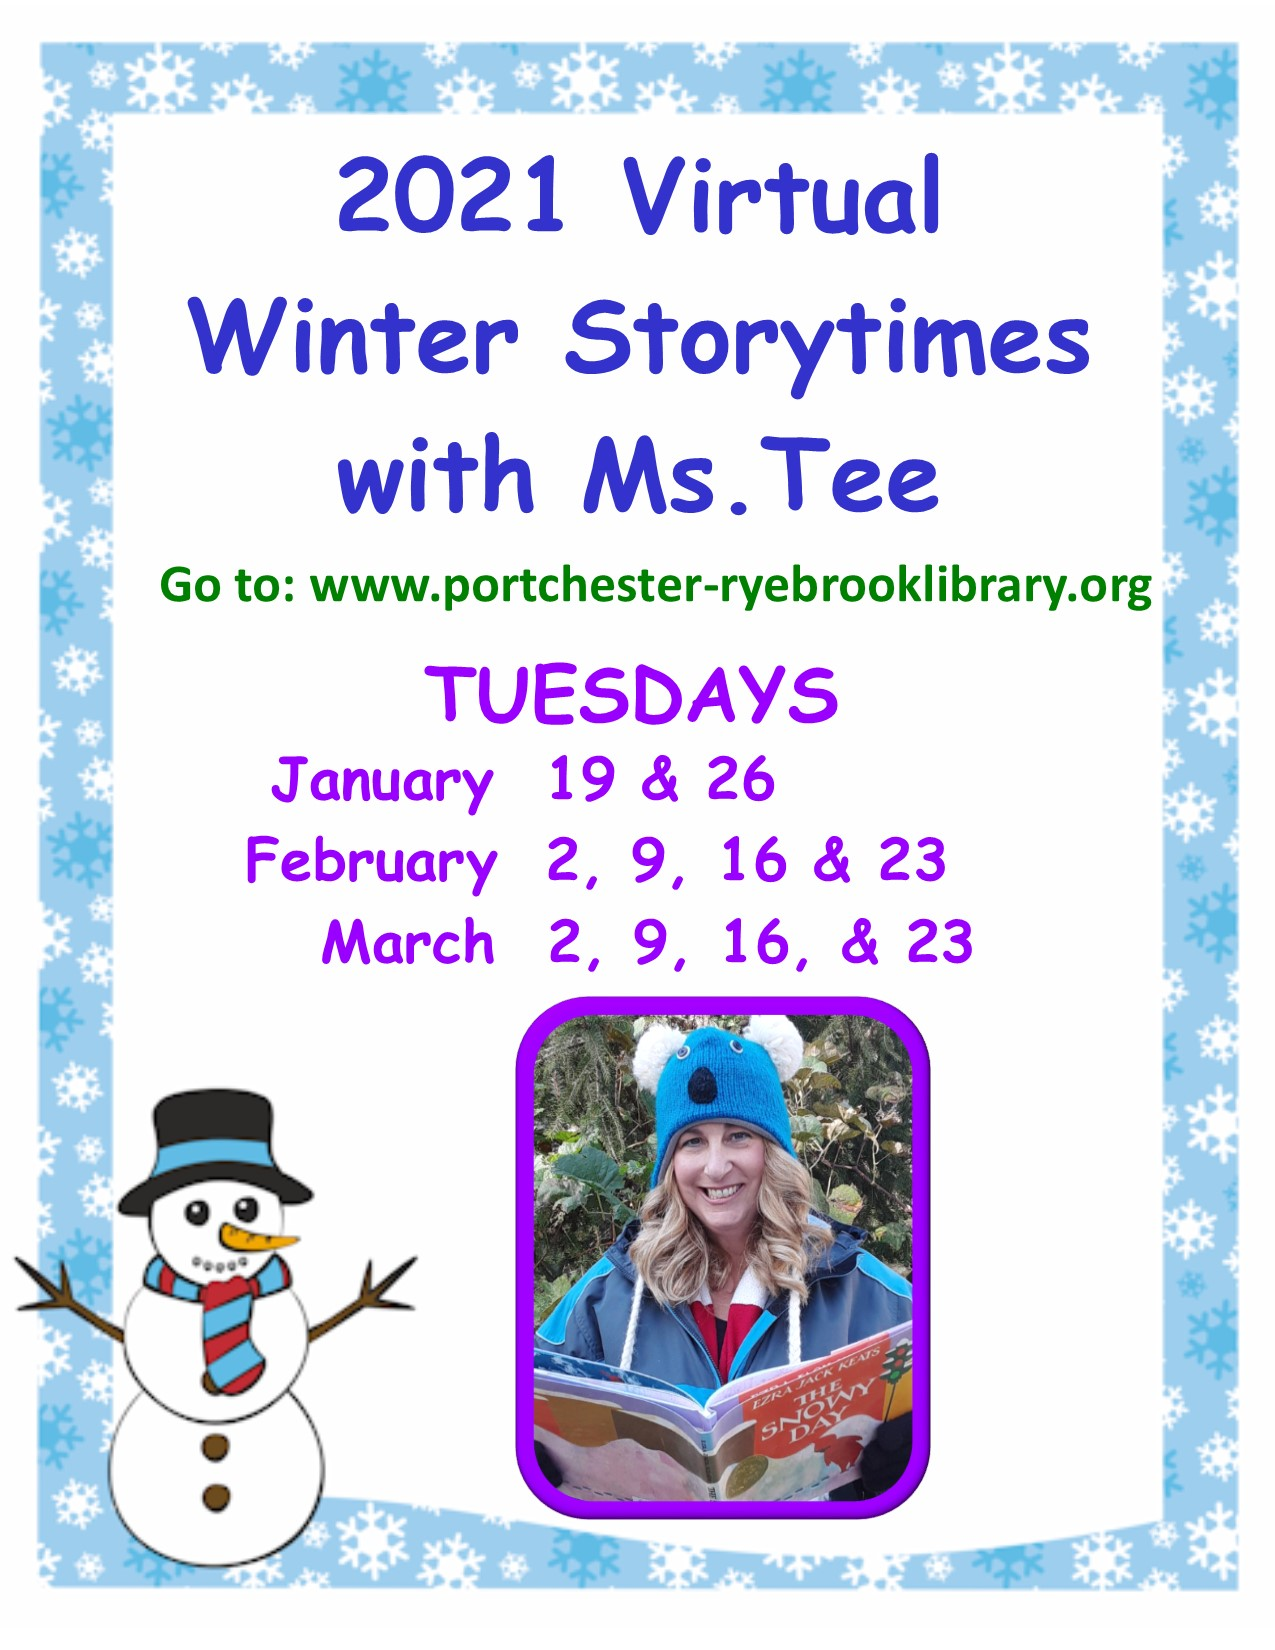 ONLINE Virtual Winter Storytime with Ms. Tee at Port Chester-Rye Brook Library